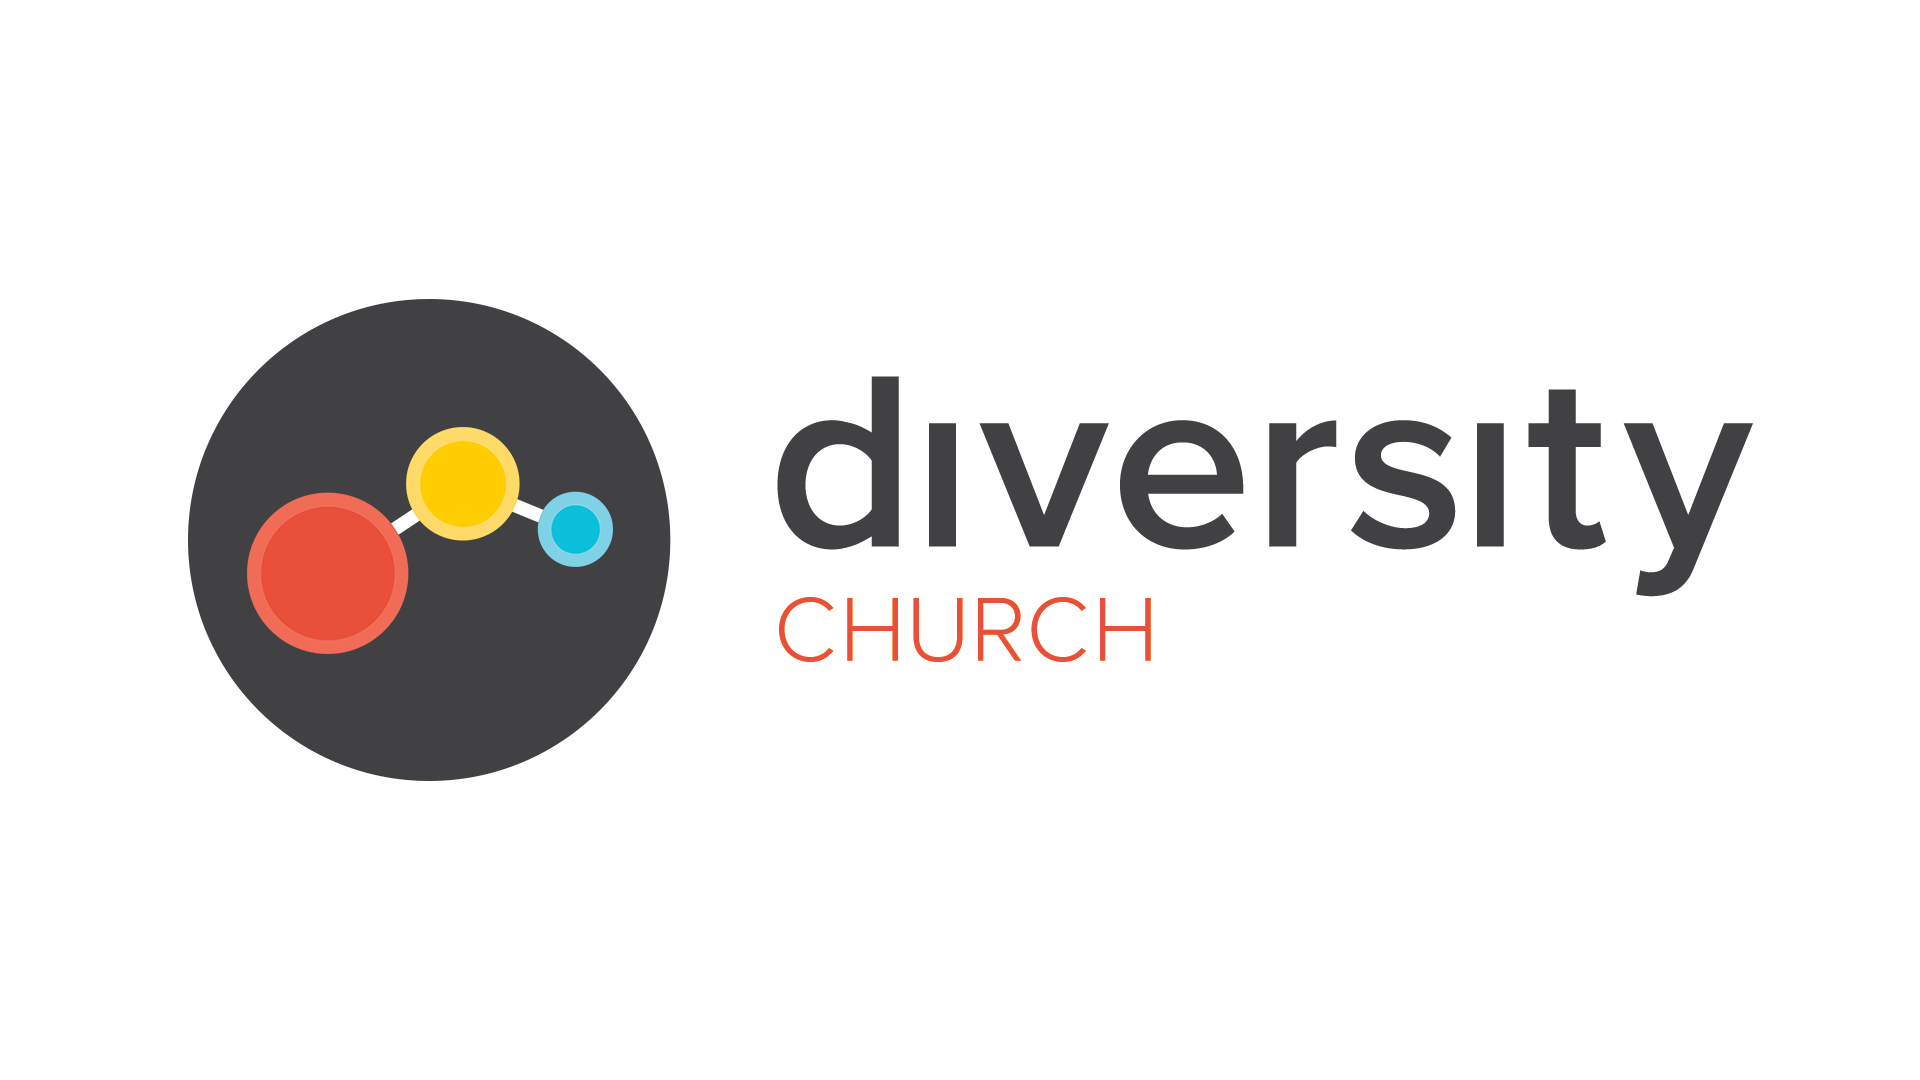 Diversity Church Logo Dark.png